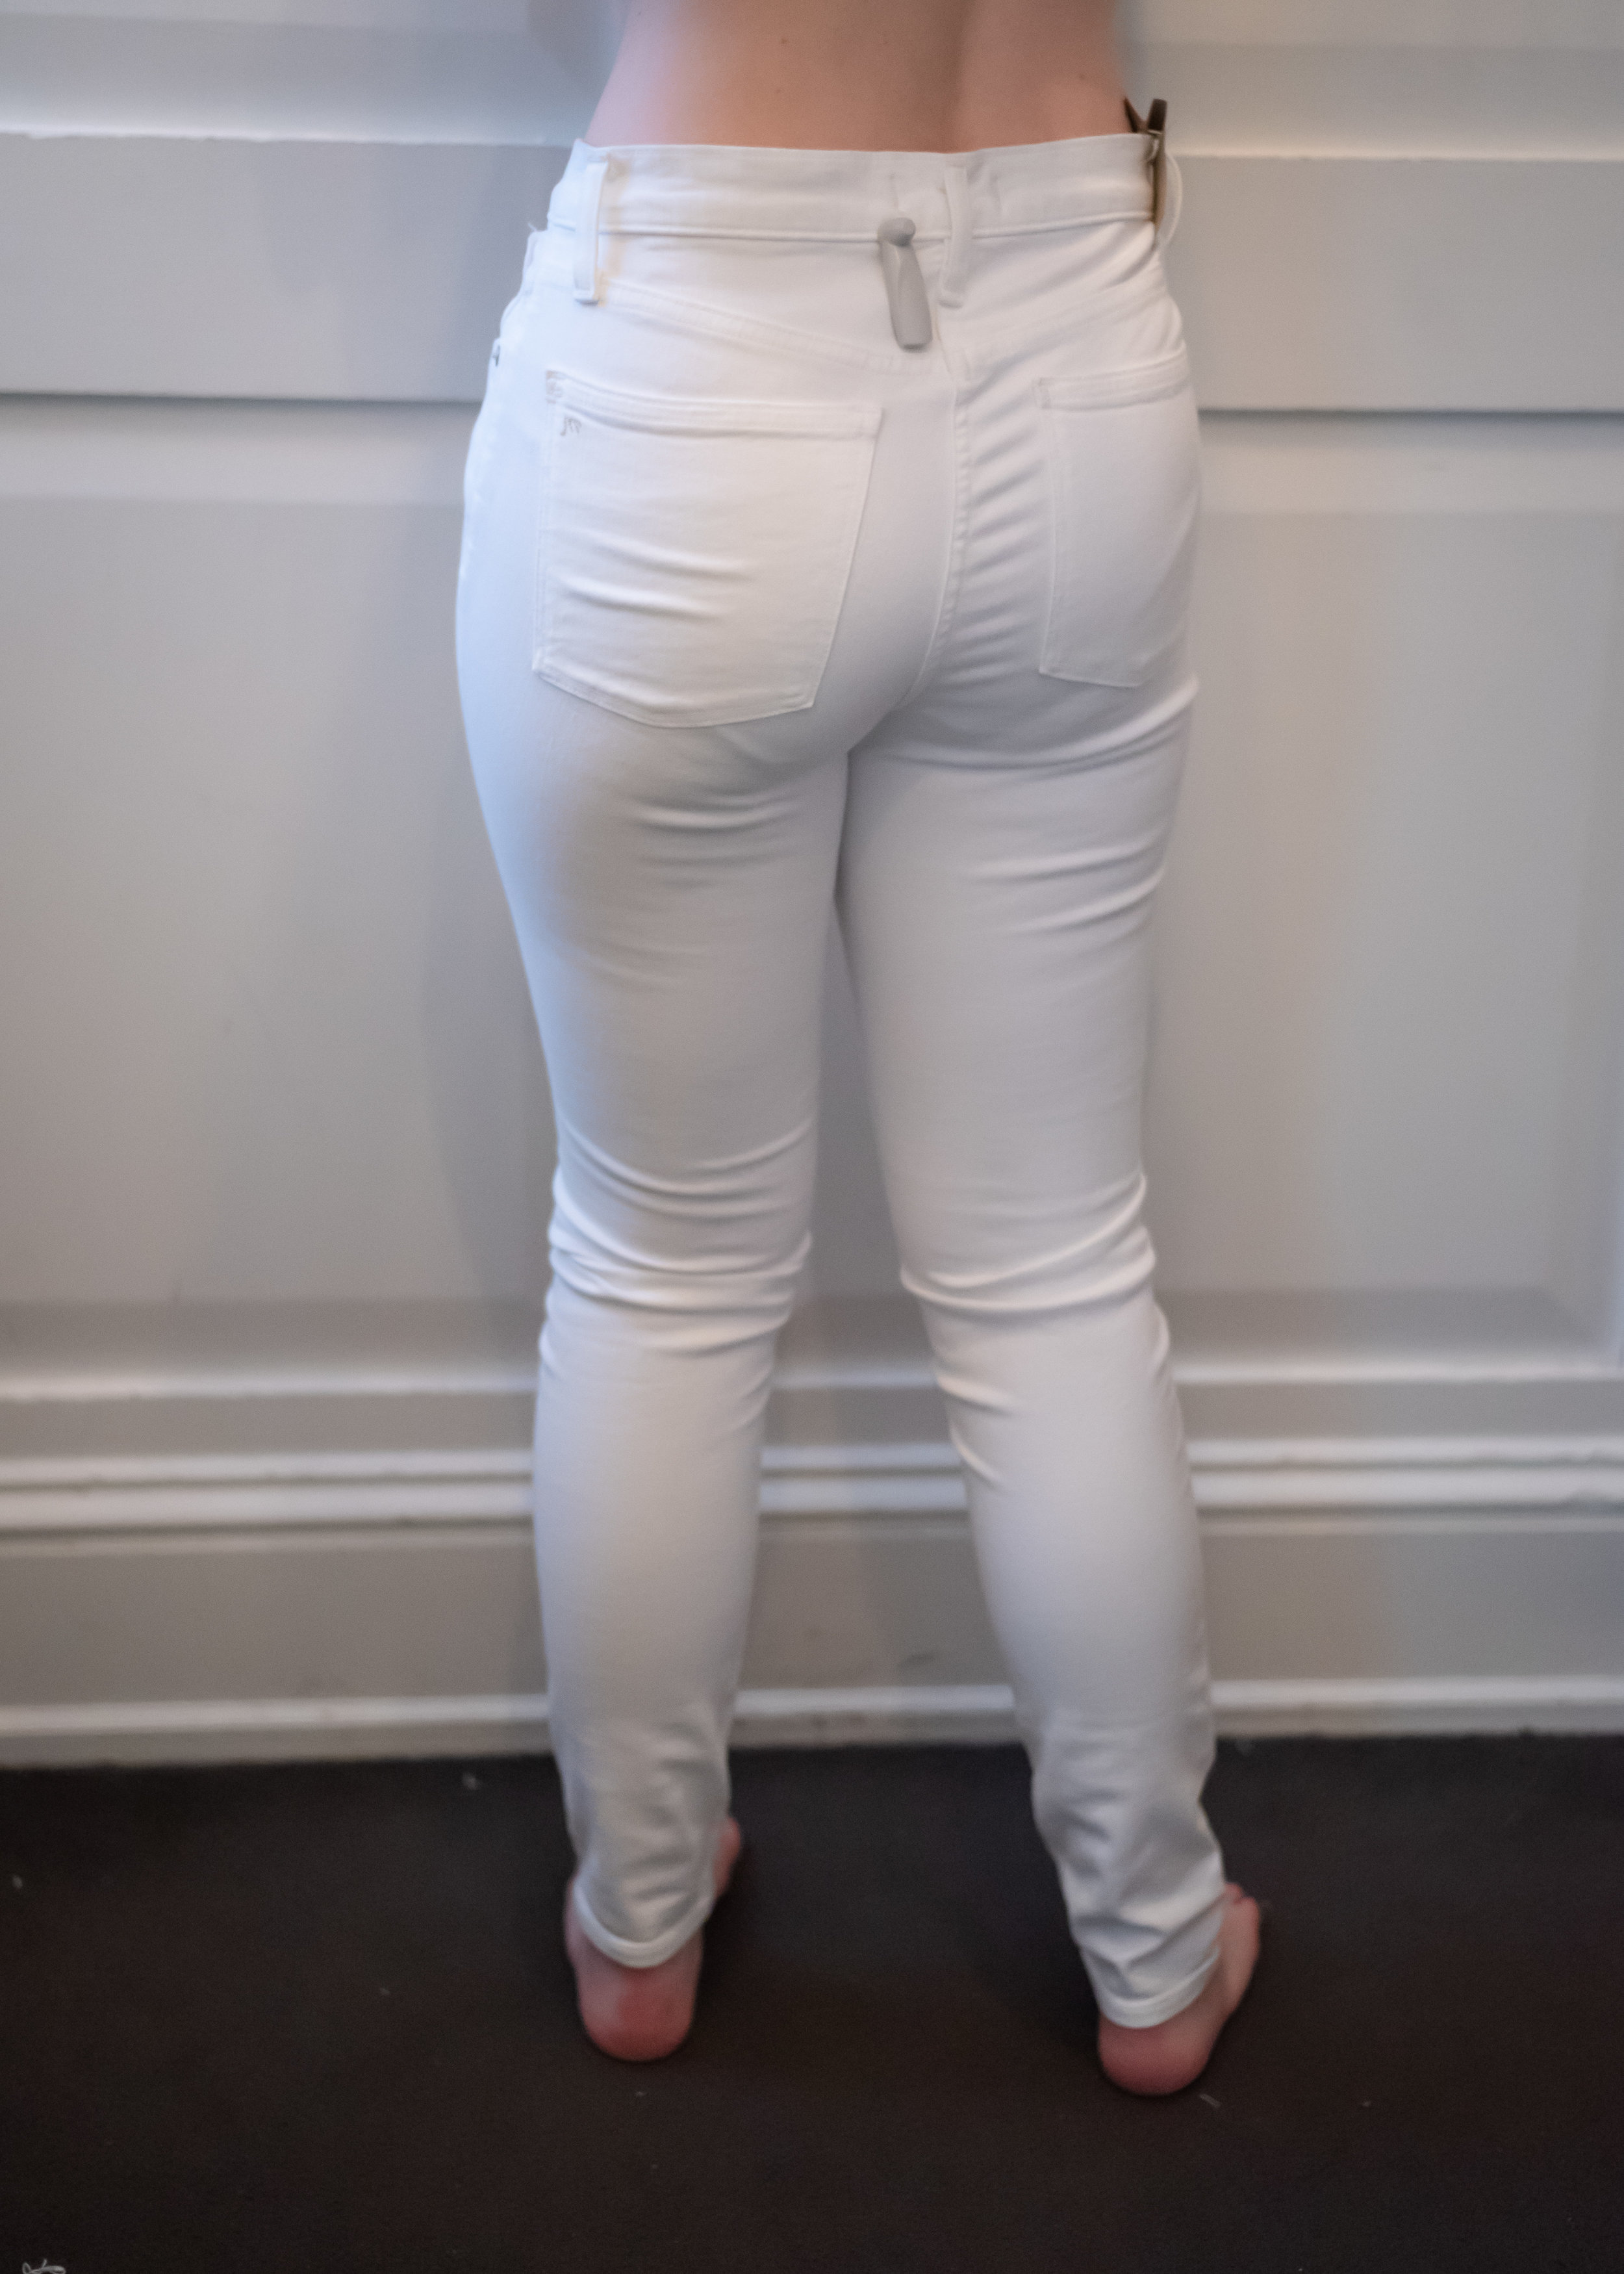 Madewell High Rise Skinny Jeans - Size 28 - Back View